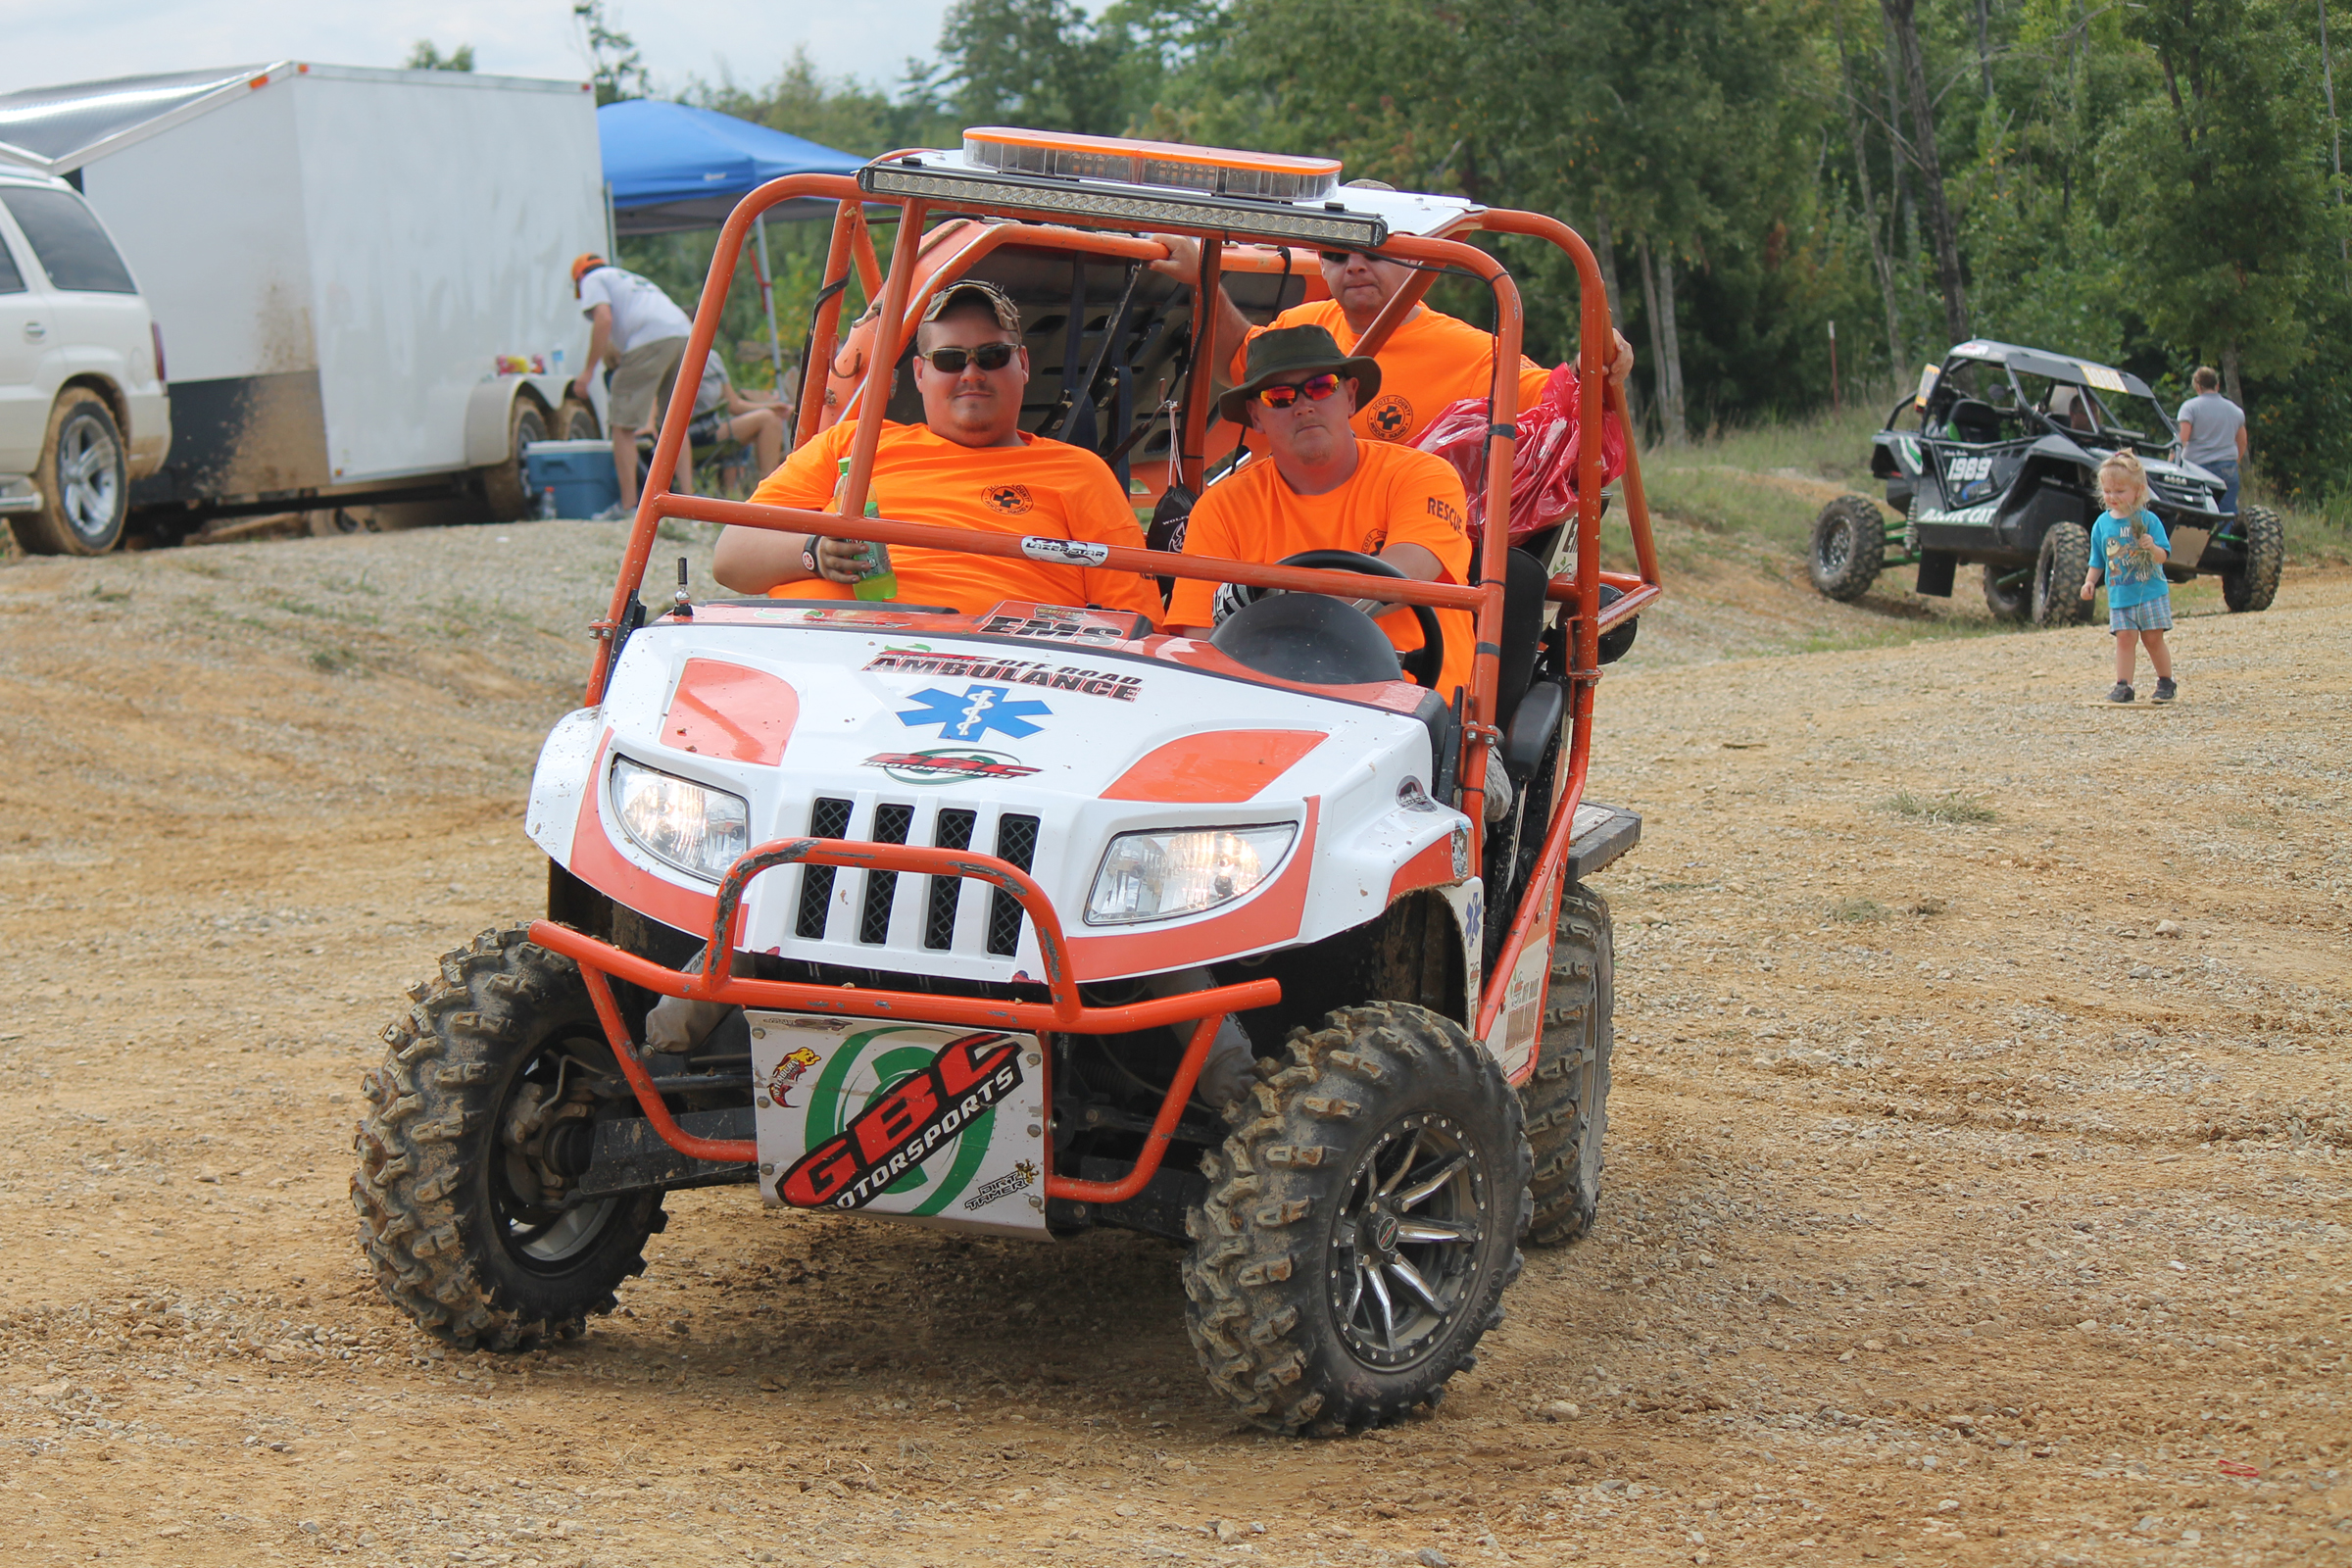 GBC supplied the Brimstone EMS crew with a SXS ambulance for last year's event.